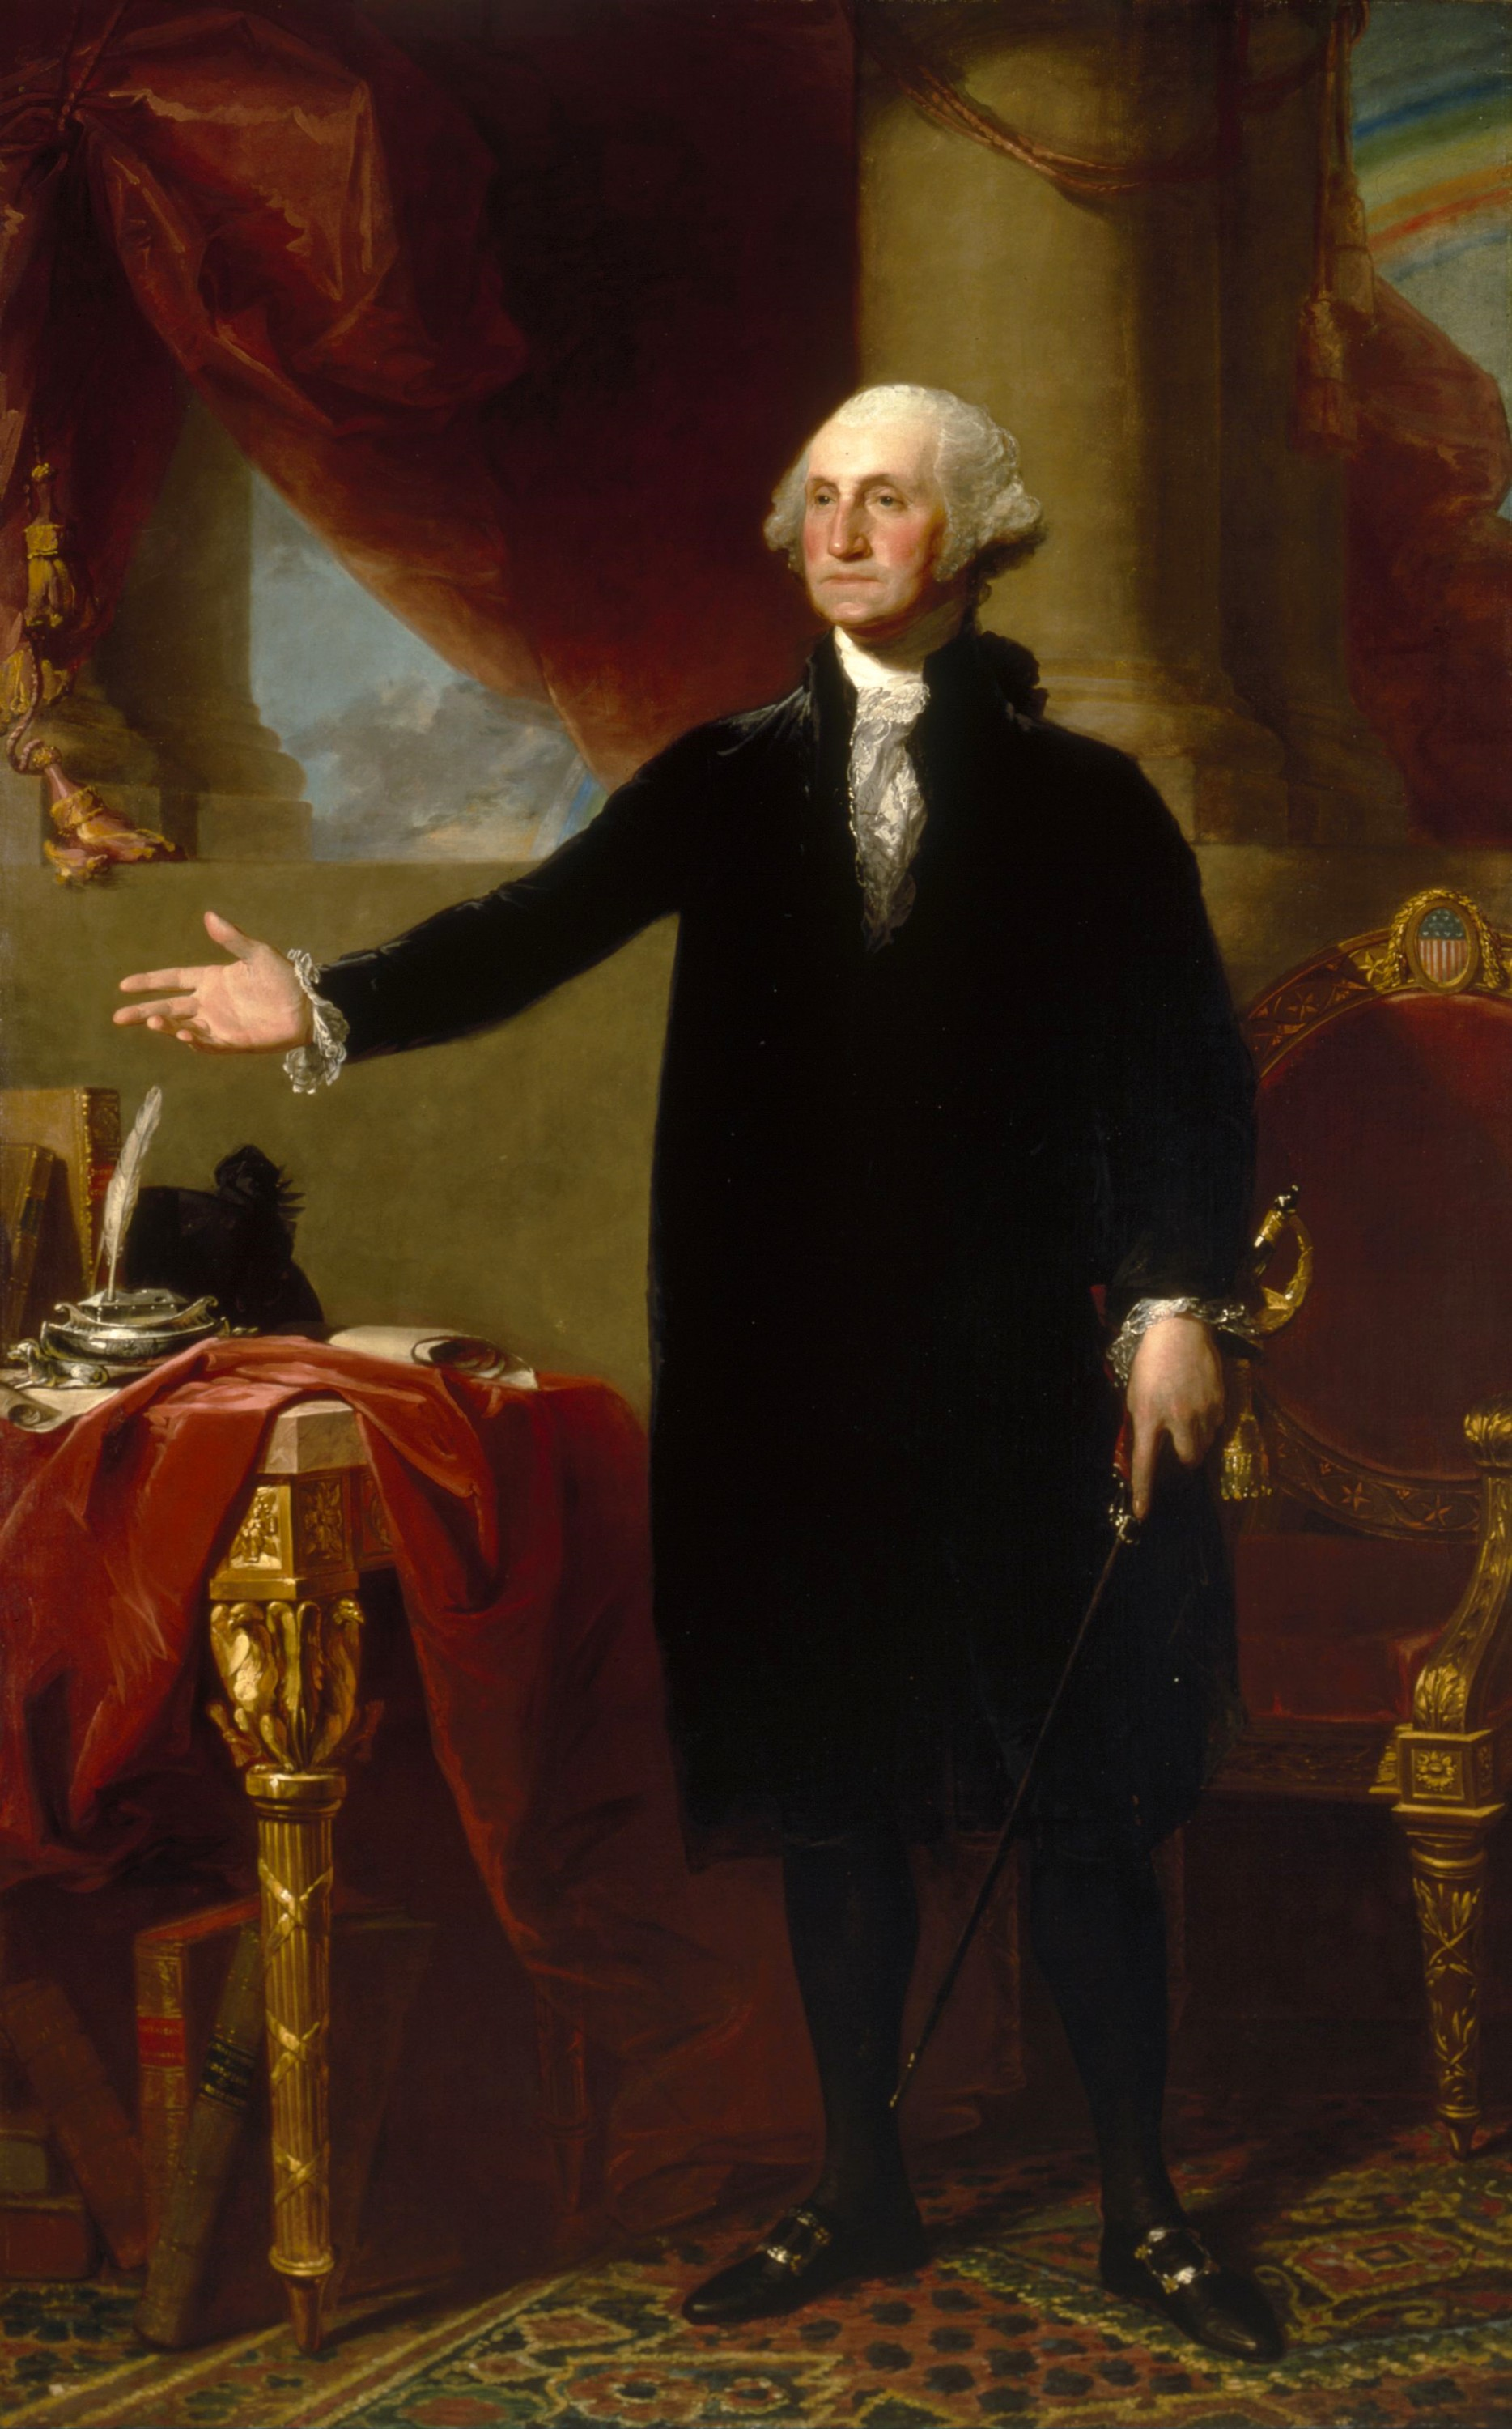 George Washington intentionally did not sit for this presidential era portrait while wearing military attire.  He wanted to emphasize the Office of the President's civilian nature. - George Washington, Gilbert Stuart, ca. 1796. [NPG.2001.13]. Courtesy National Portrait Gallery, Smithsonian Institution.